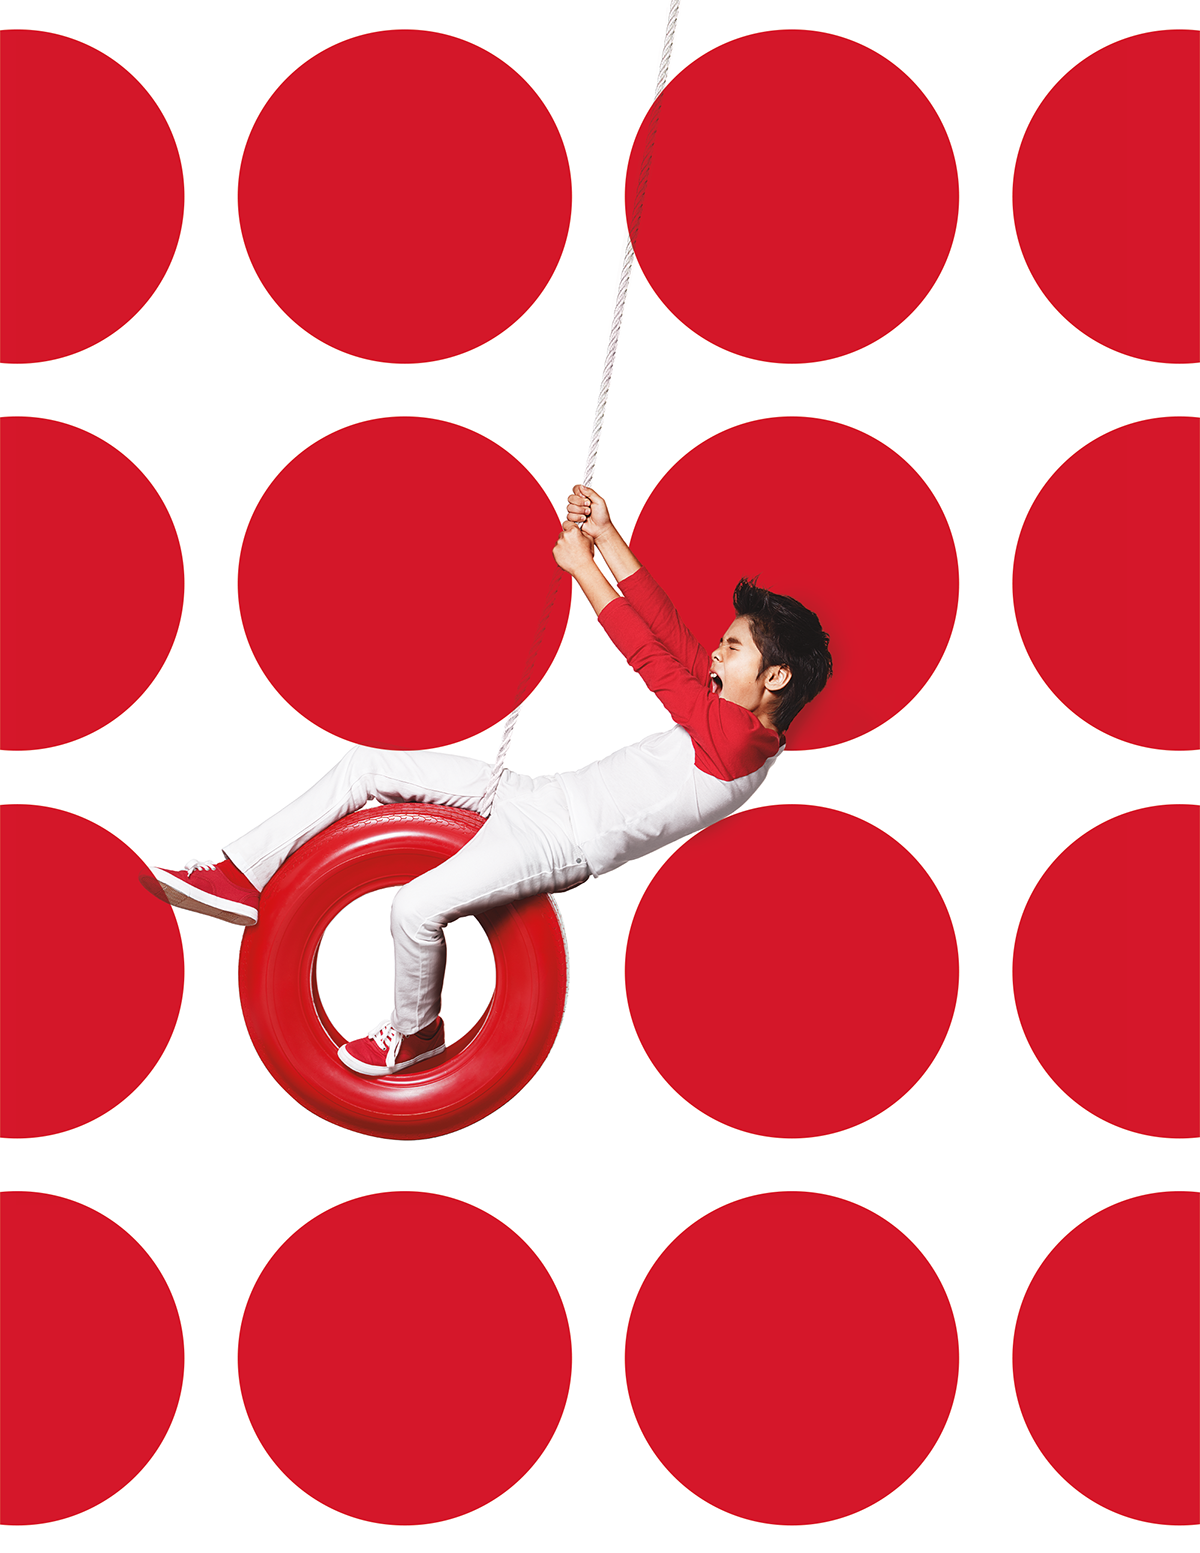 Target's logo is elegantly simple. One dot. One ring. We created a.